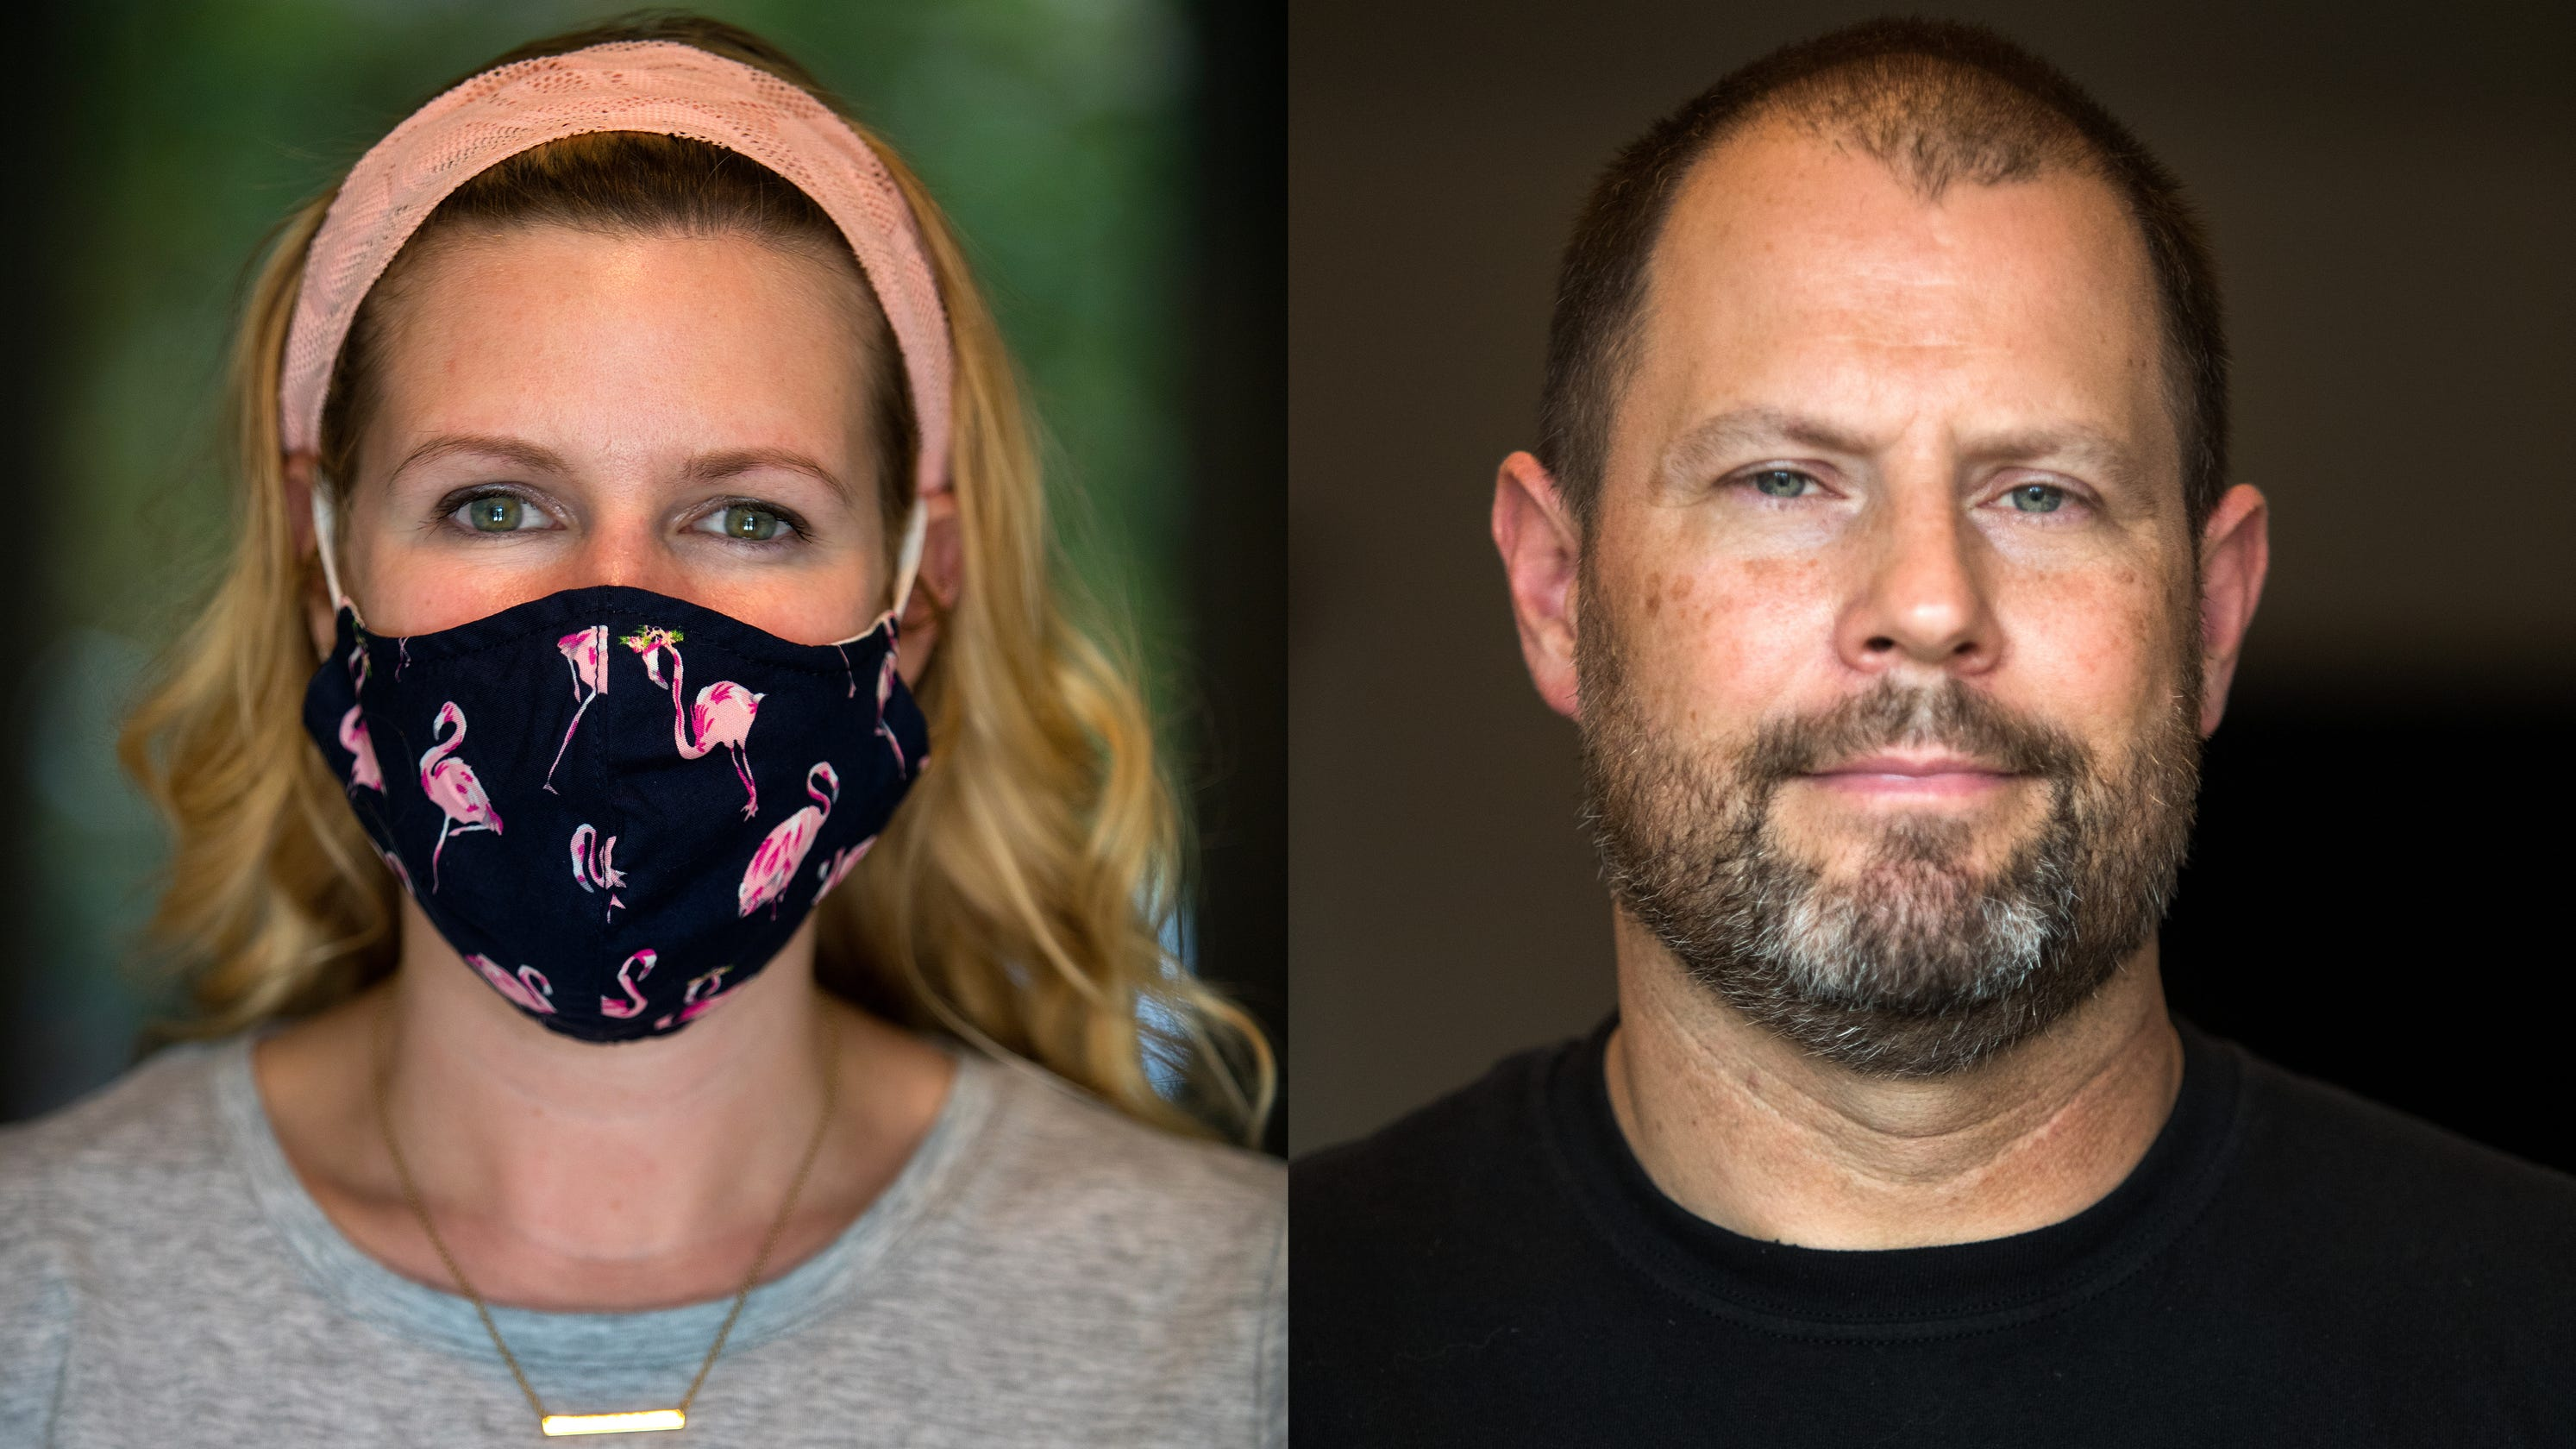 As COVID-19 sweeps Delaware, face masks can save lives. So why are we fighting over them?